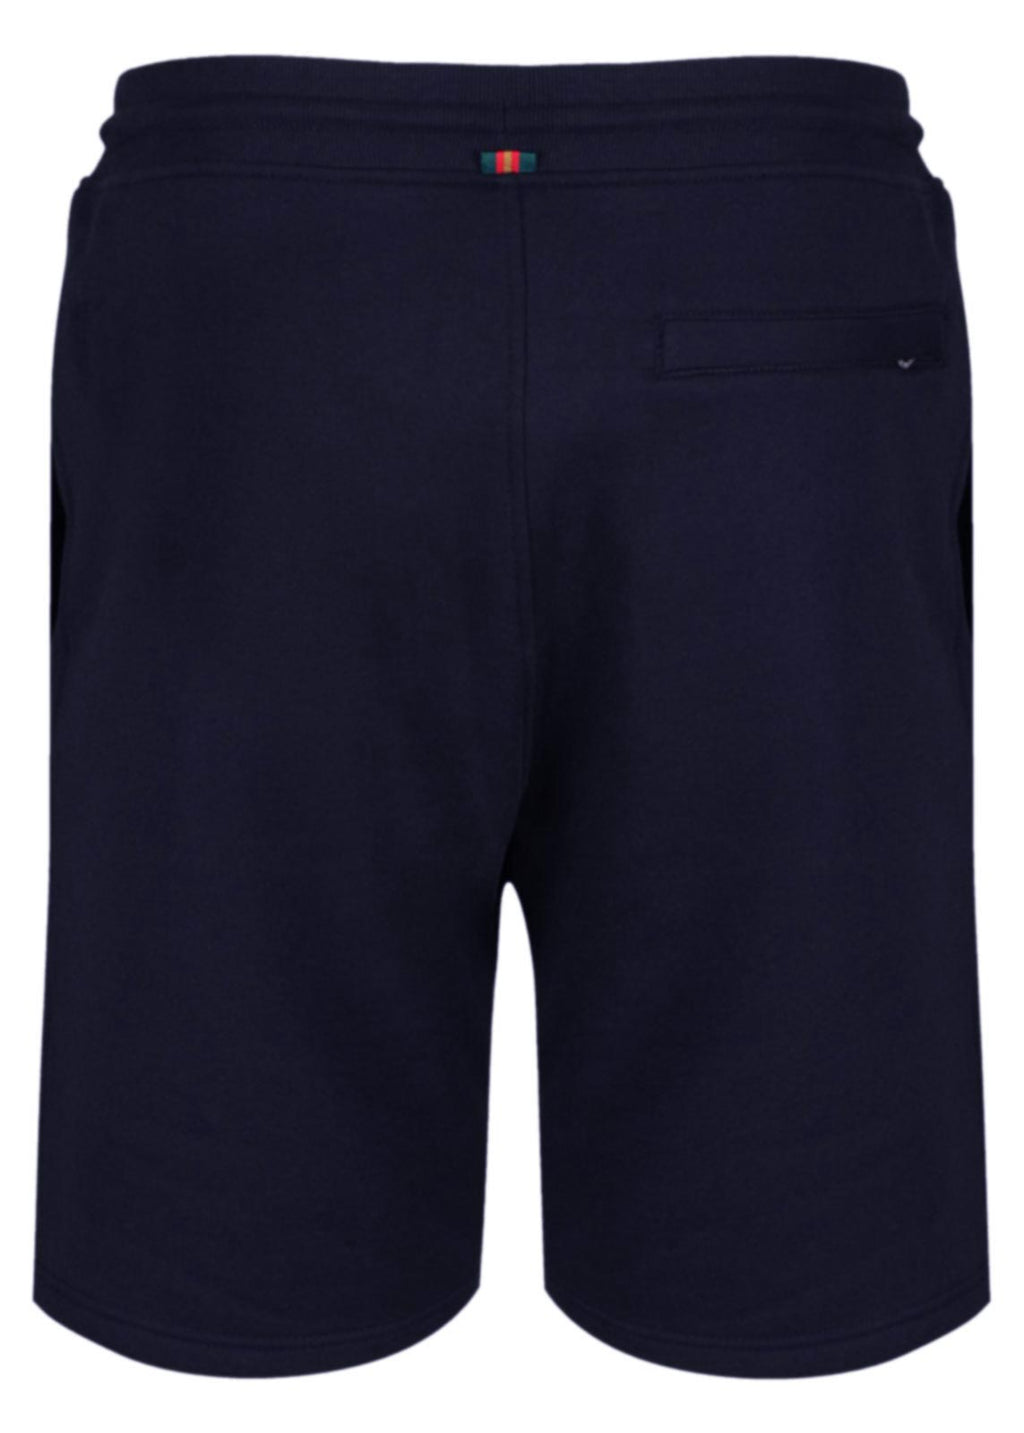 Luke 1977 Amsterdam 2 Sweat Shorts Navy